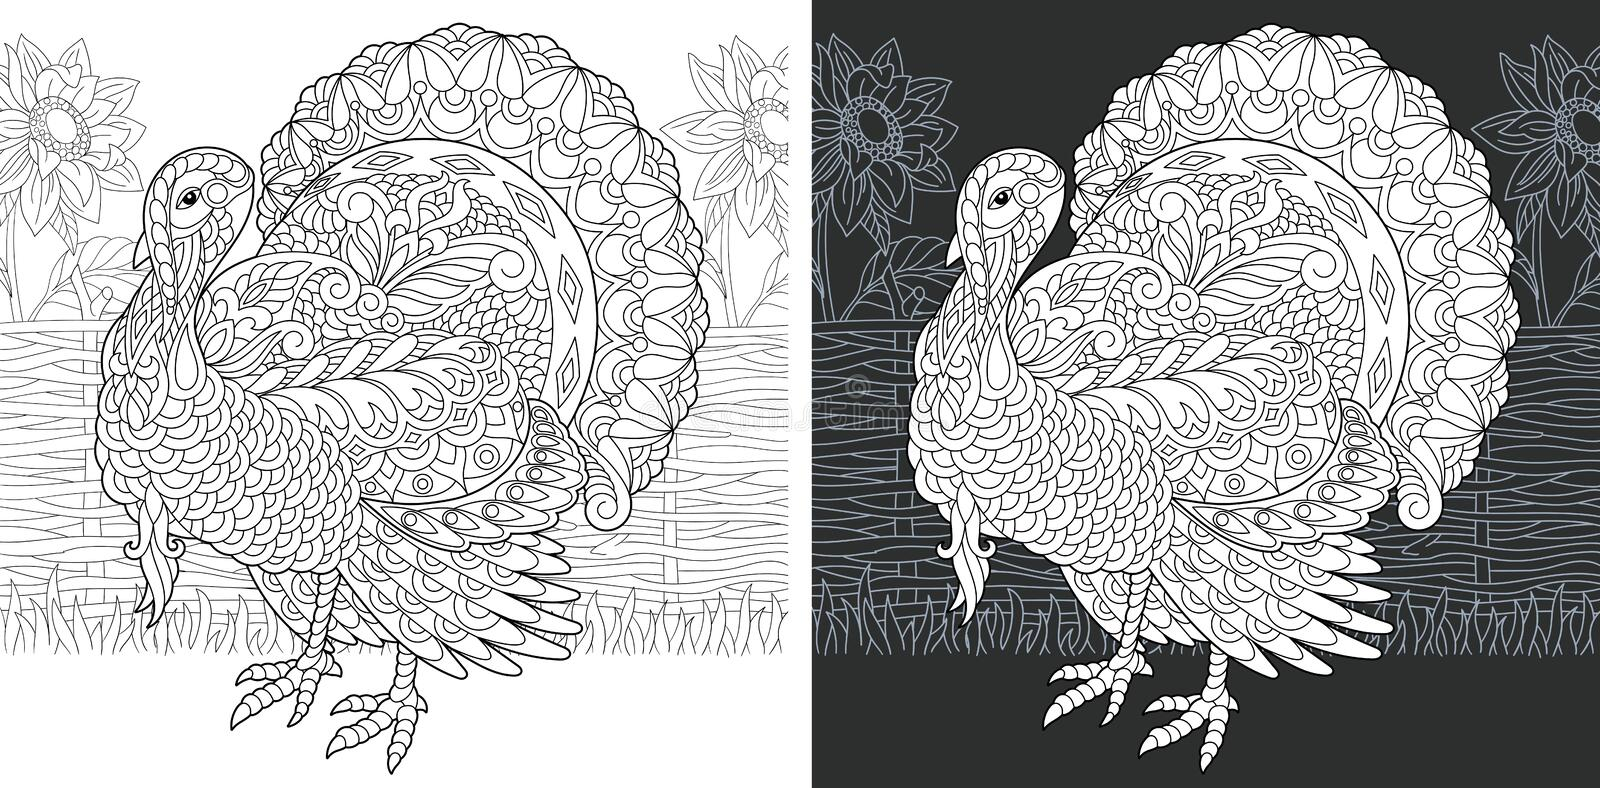 Coloring book page with turkey. Coloring Page. Coloring Book. Colouring picture with Turkey drawn in zentangle style. Thanksgiving day holiday bird symbol royalty free illustration